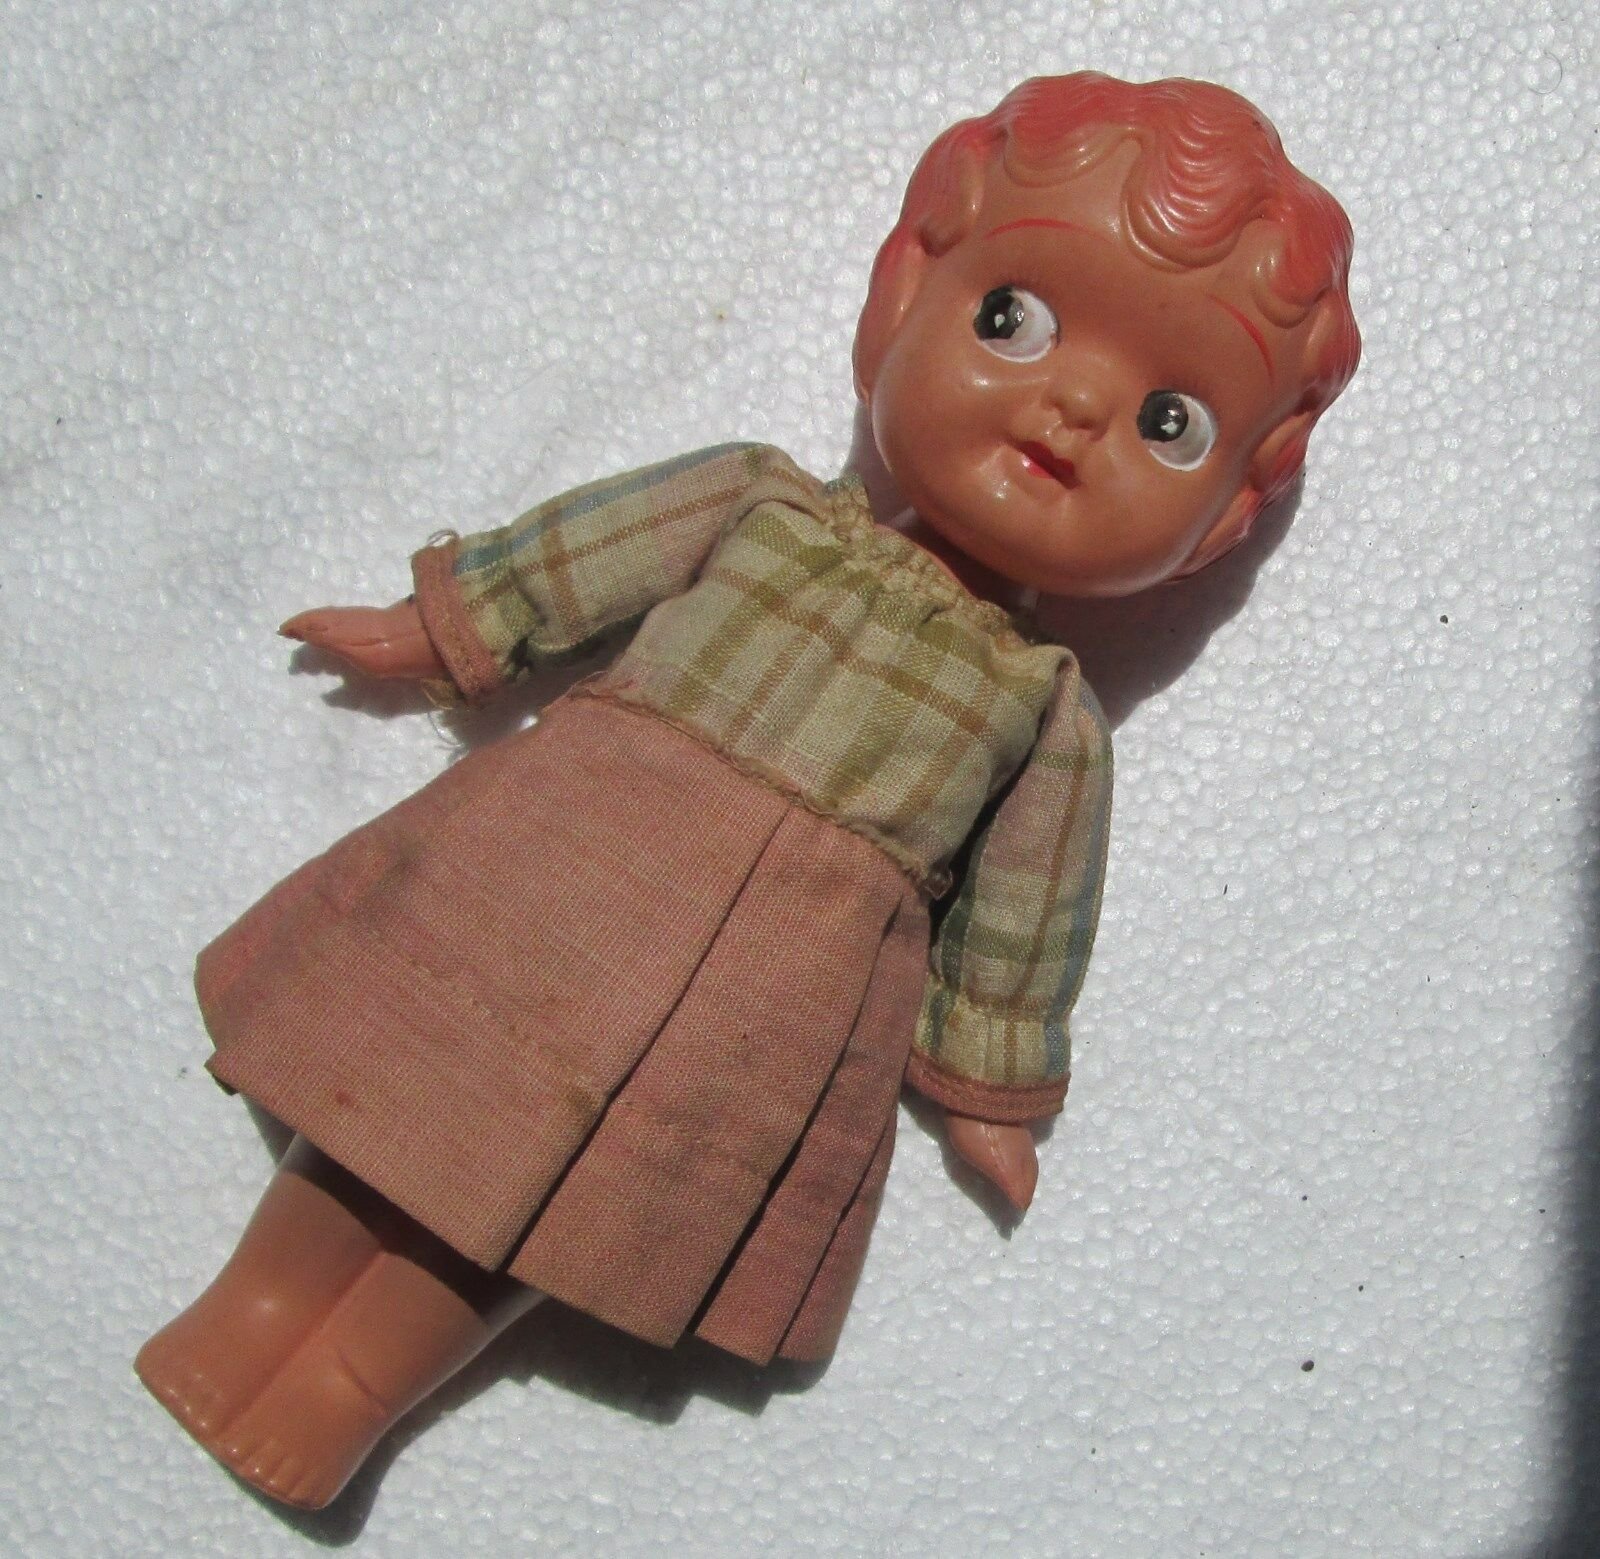 Antique Celluloid Doll Swivel Head C1930 Handmade Clothes Side Glazing 7in Japan